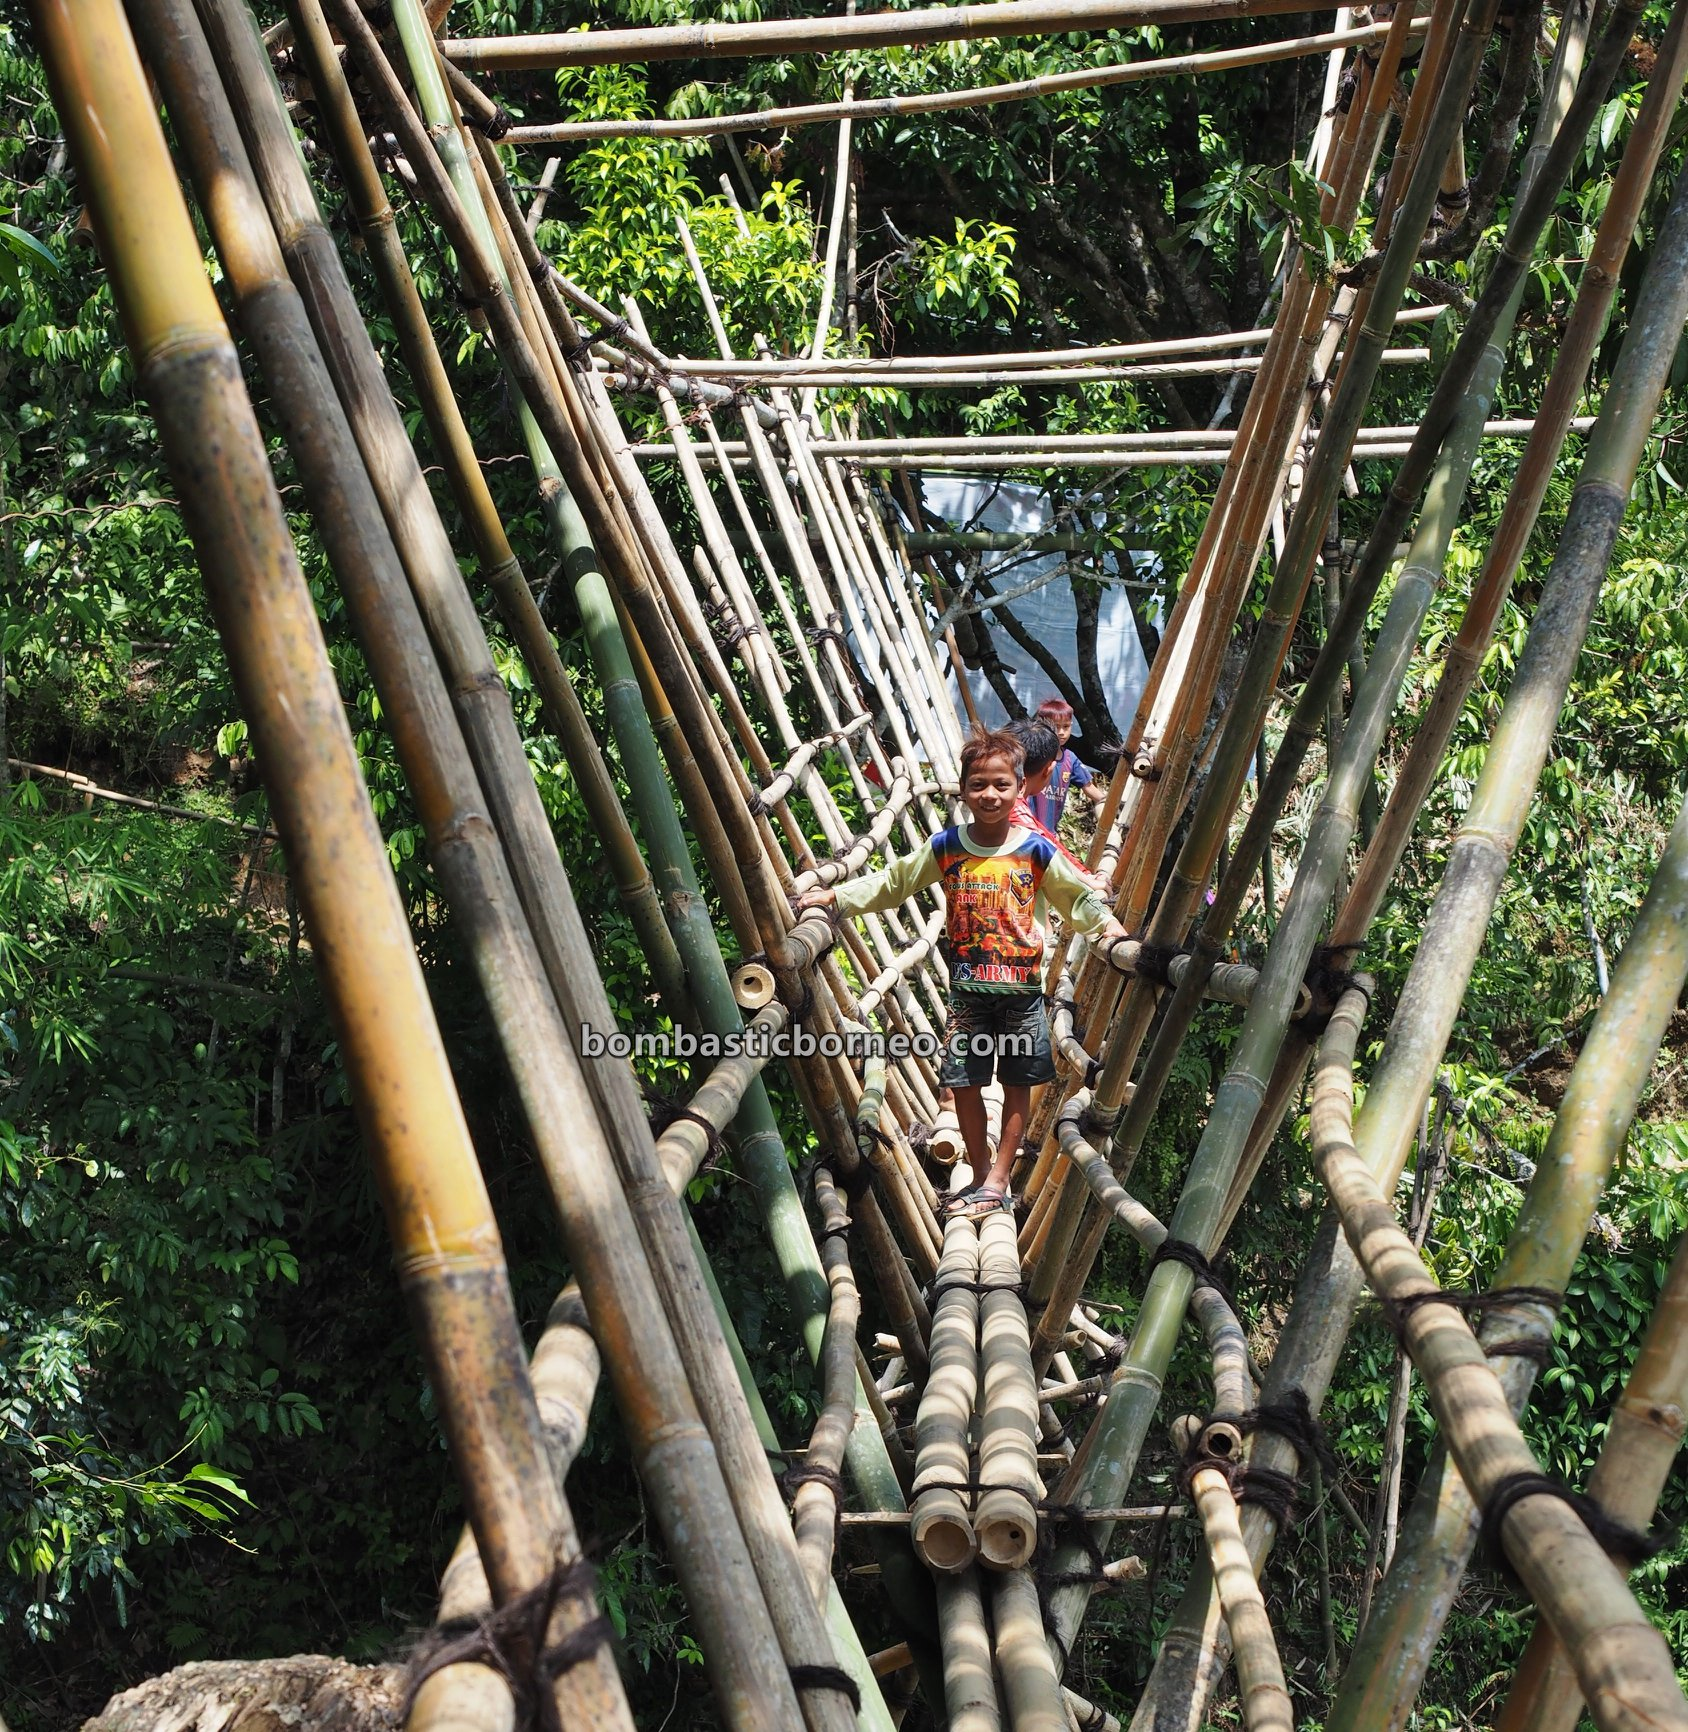 bamboo bridge, Sungkung Medeng, authentic, traditional, backpackers, Bengkayang, Indonesia, Kalimantan Barat, native, tribal, highland, village, tourist attraction, Travel guide, Trans Borneo